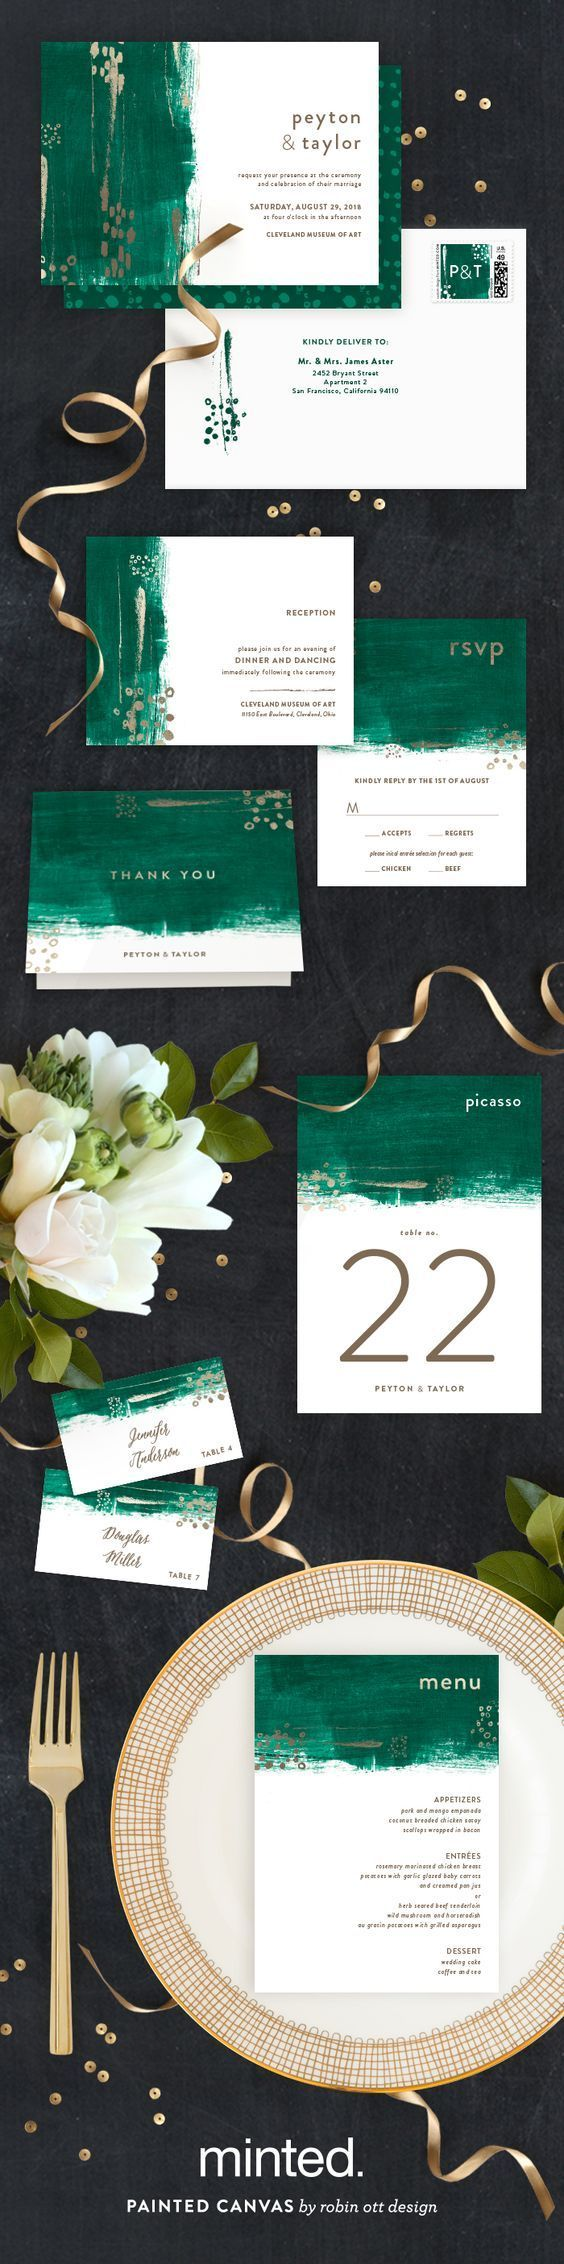 Add a hint of gold to your outdoor wedding to give it an air of elegant opulence. Painted Canvas Wedding Invitation and Reception Decor by Minted artist Robin Ott. Available now on Minted.com: